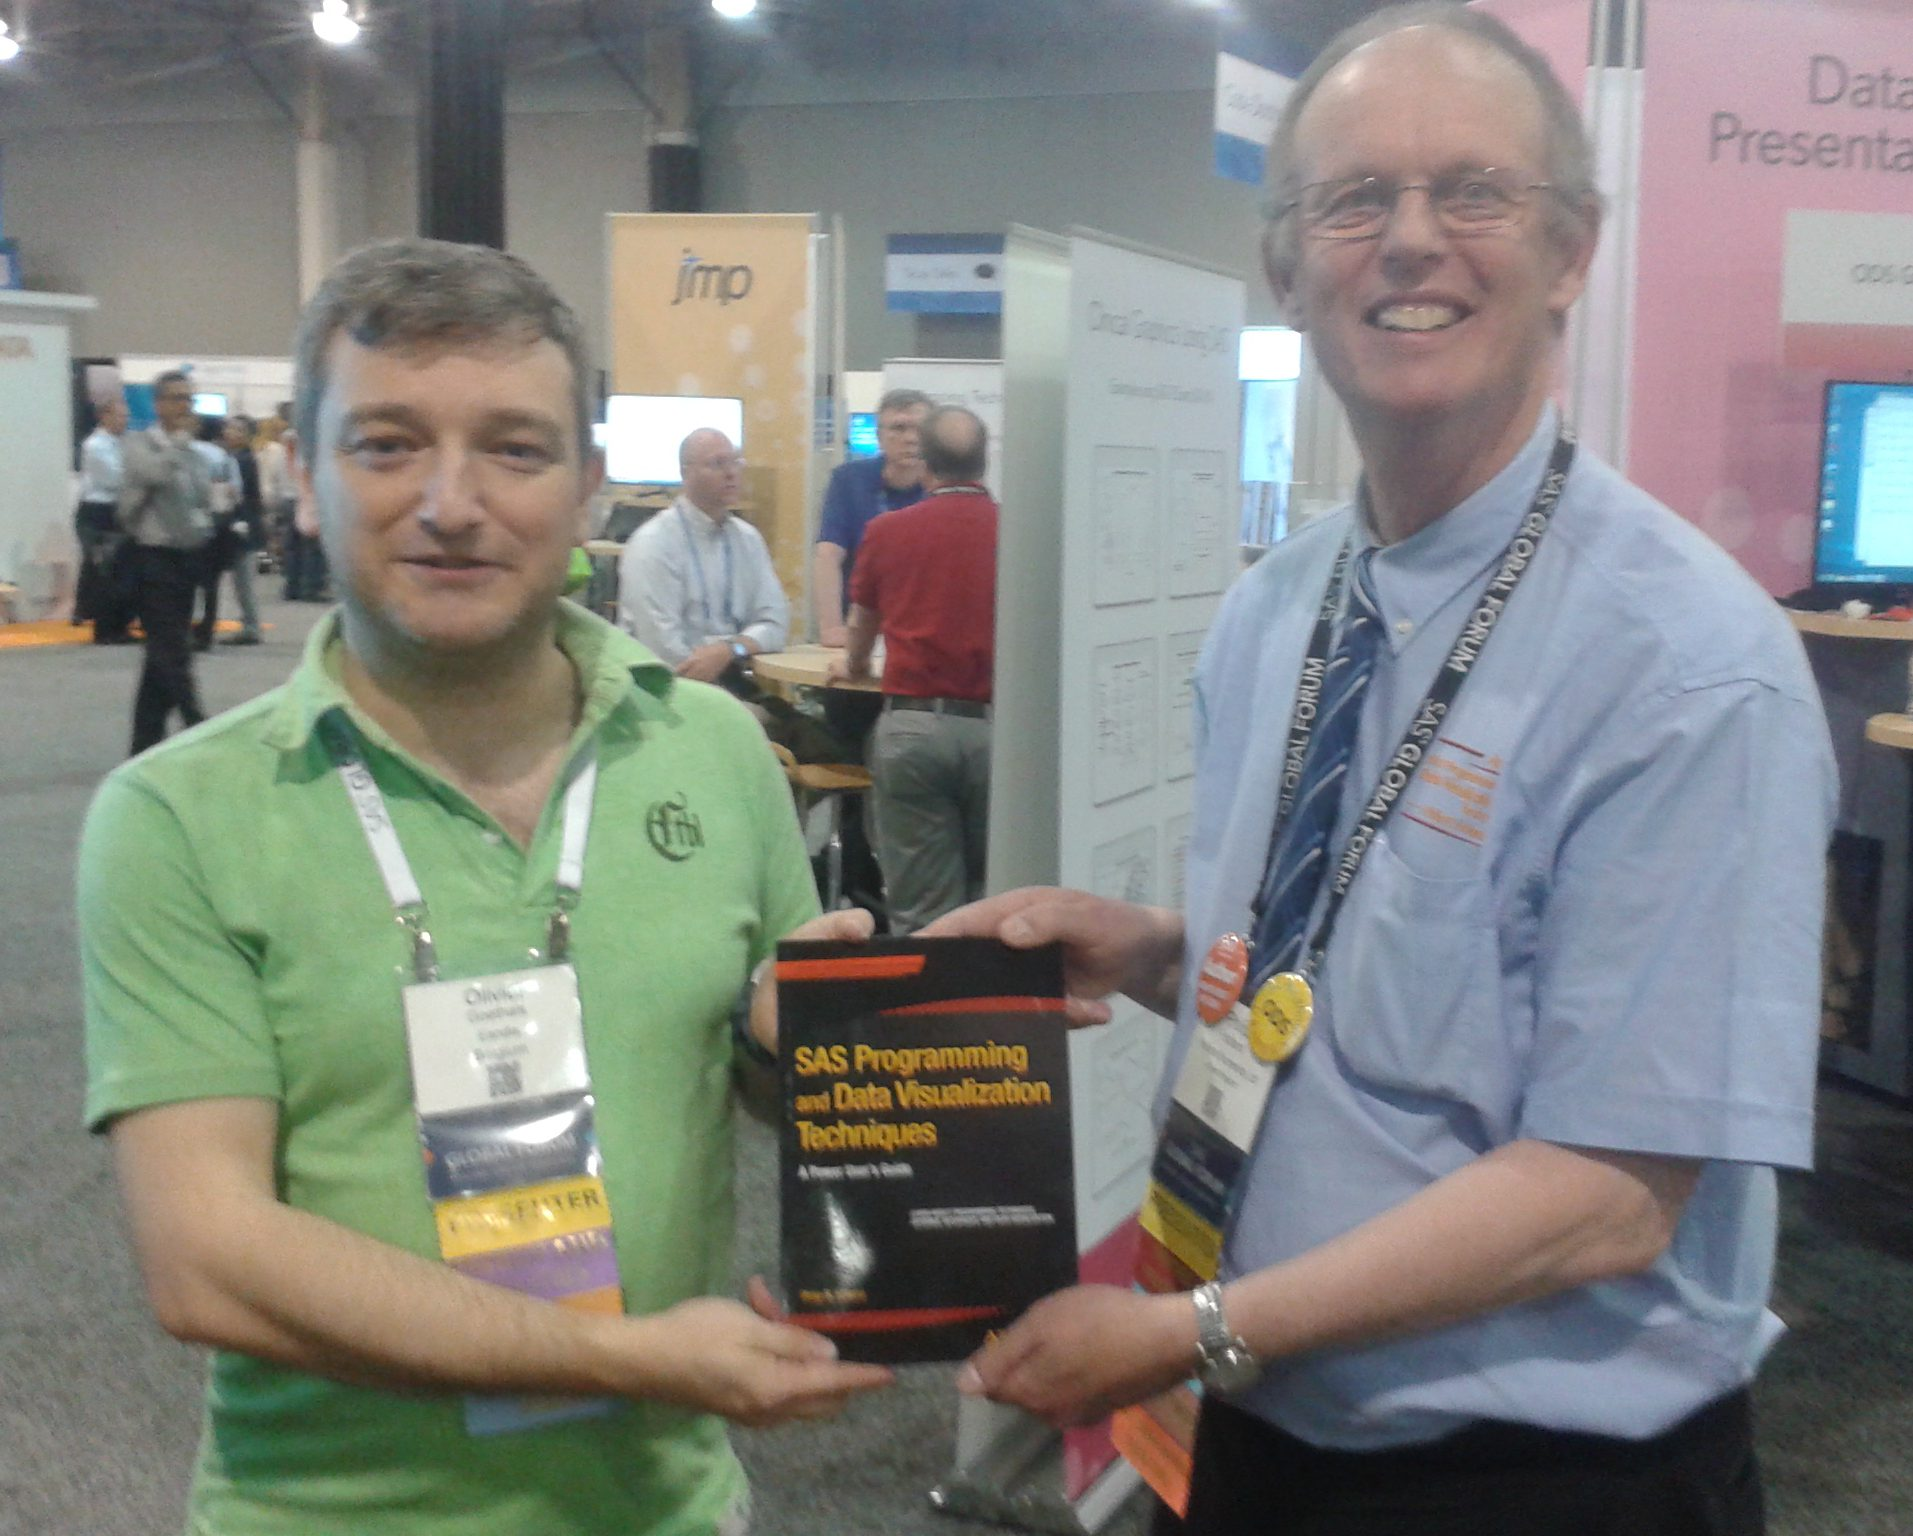 Congratulations to Olivier Goethals who won my new book in the Prize Draw at SAS Global Forum in Las Vegas